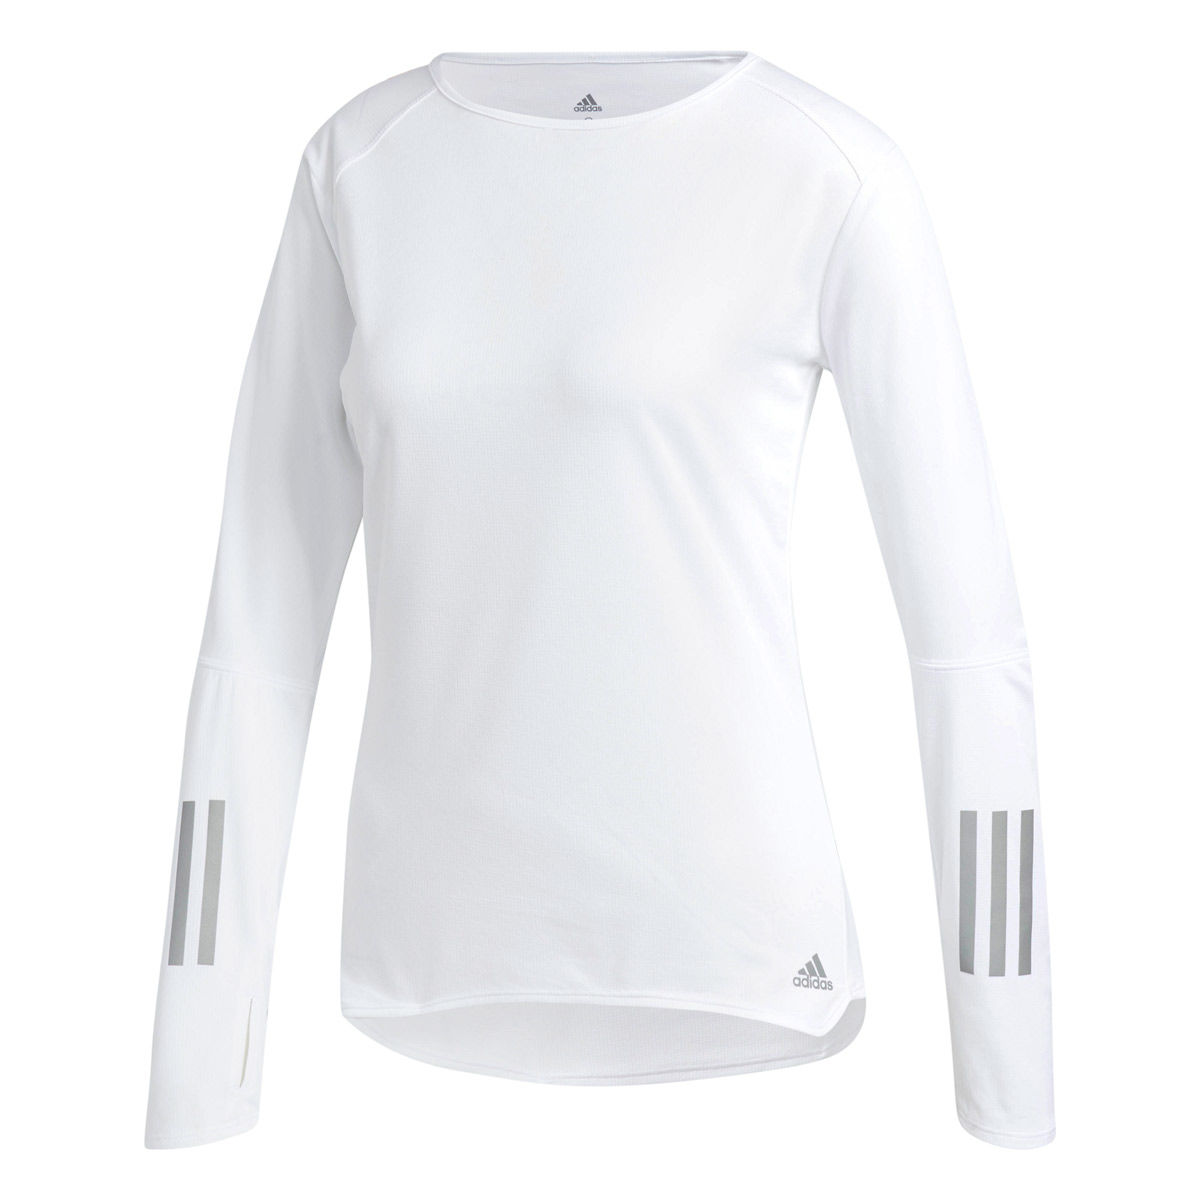 adidas Response Womens Long Sleeve Running Shirt [MSRP: $40.00]